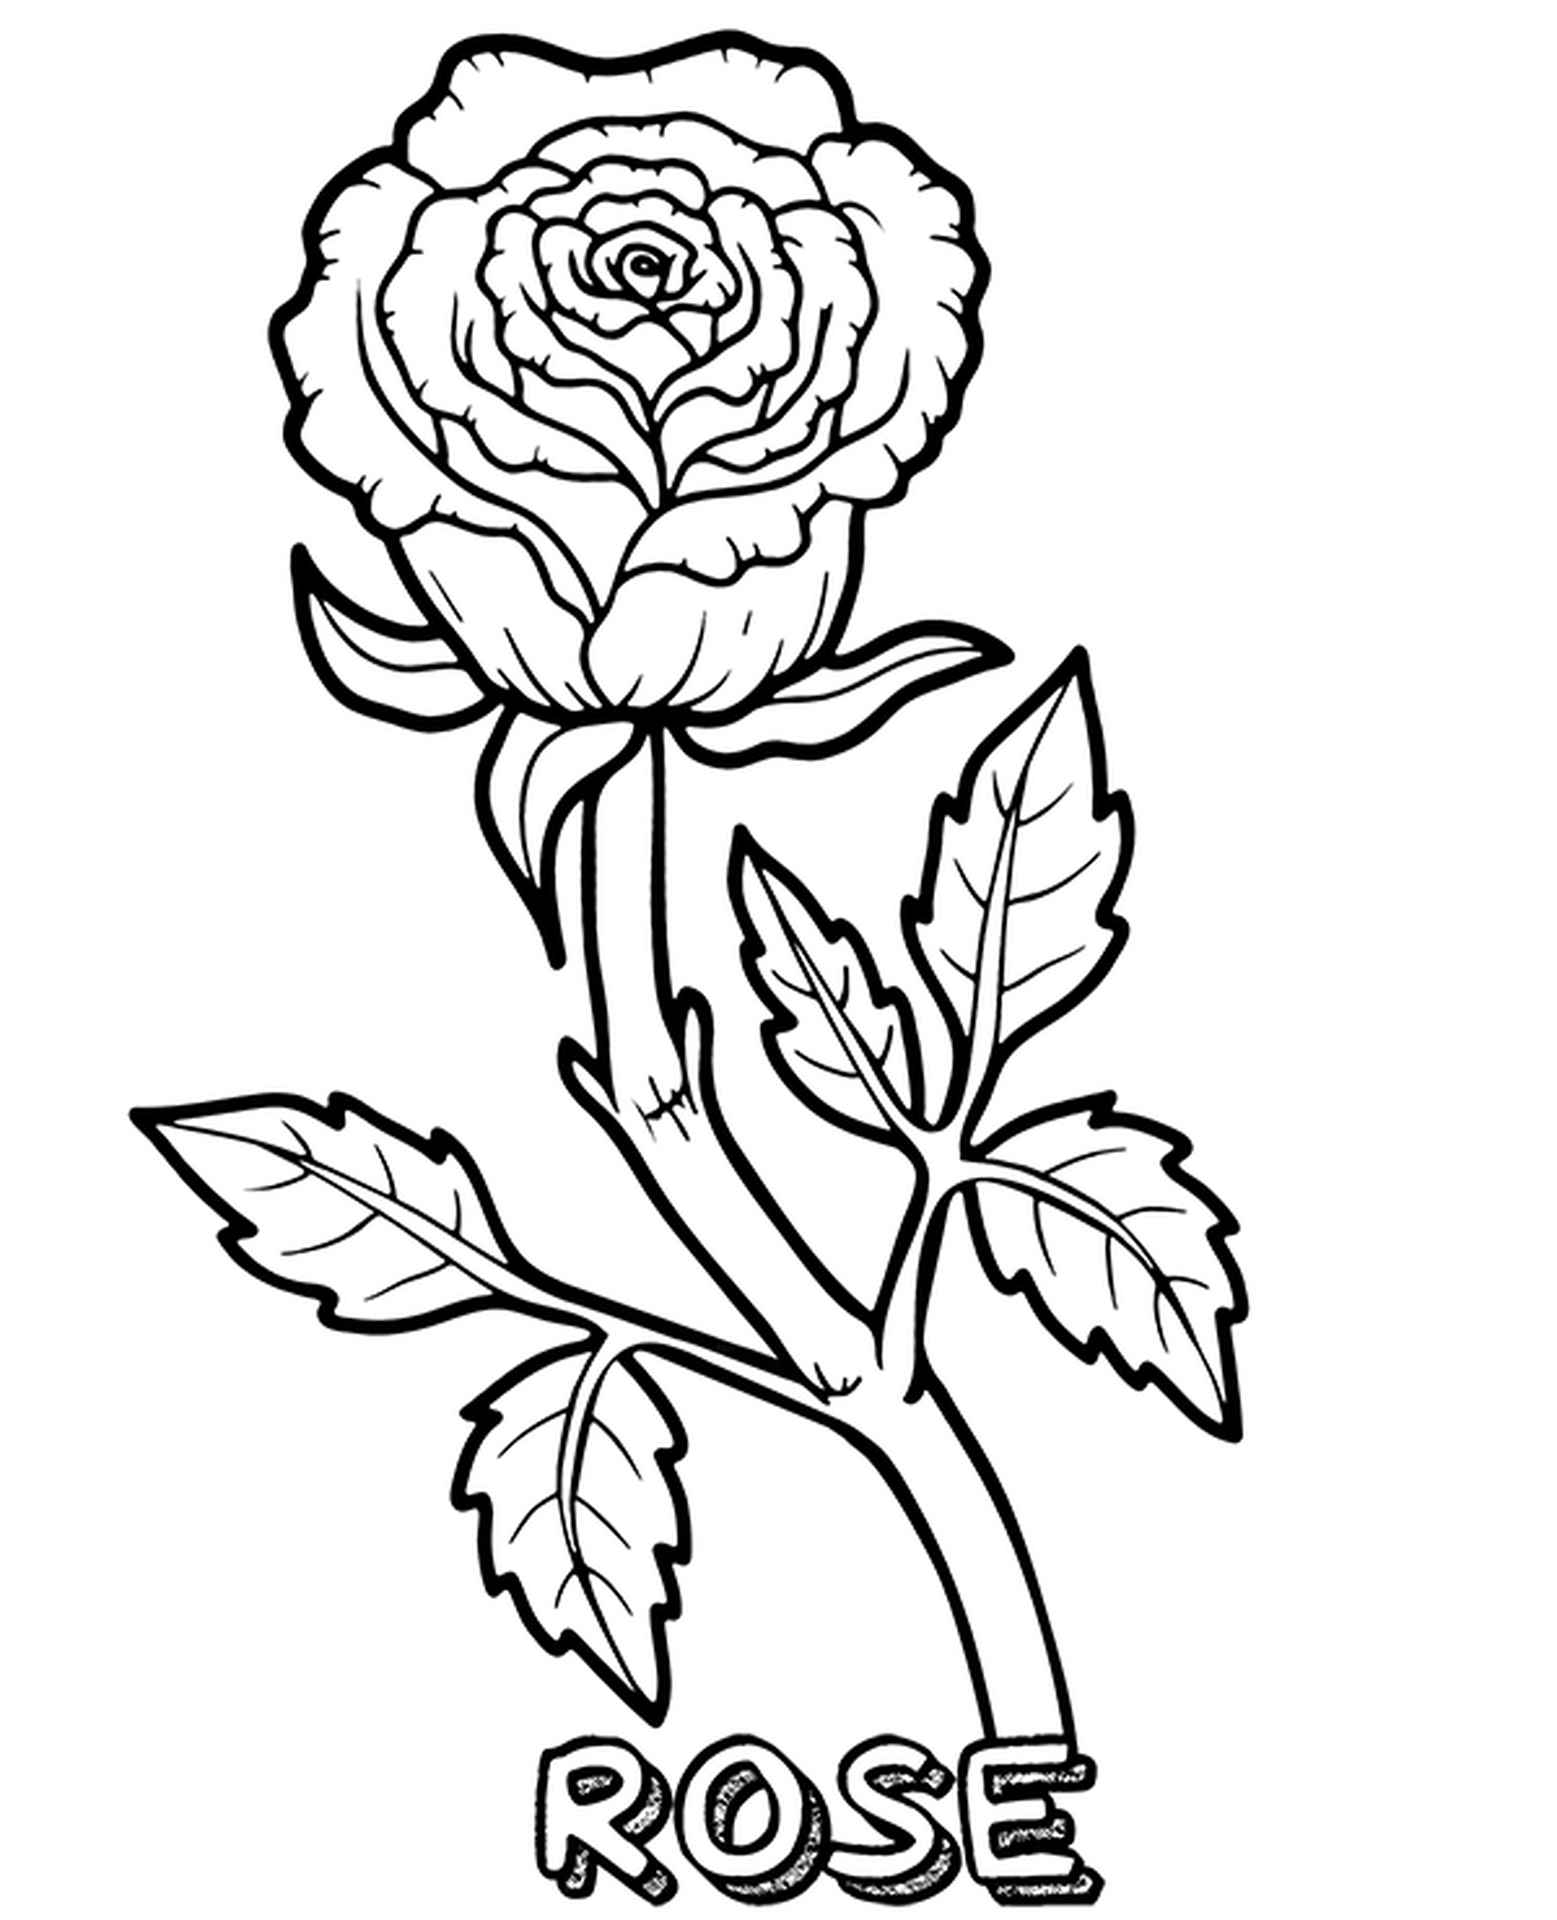 Coloring Page Of Royal Rose